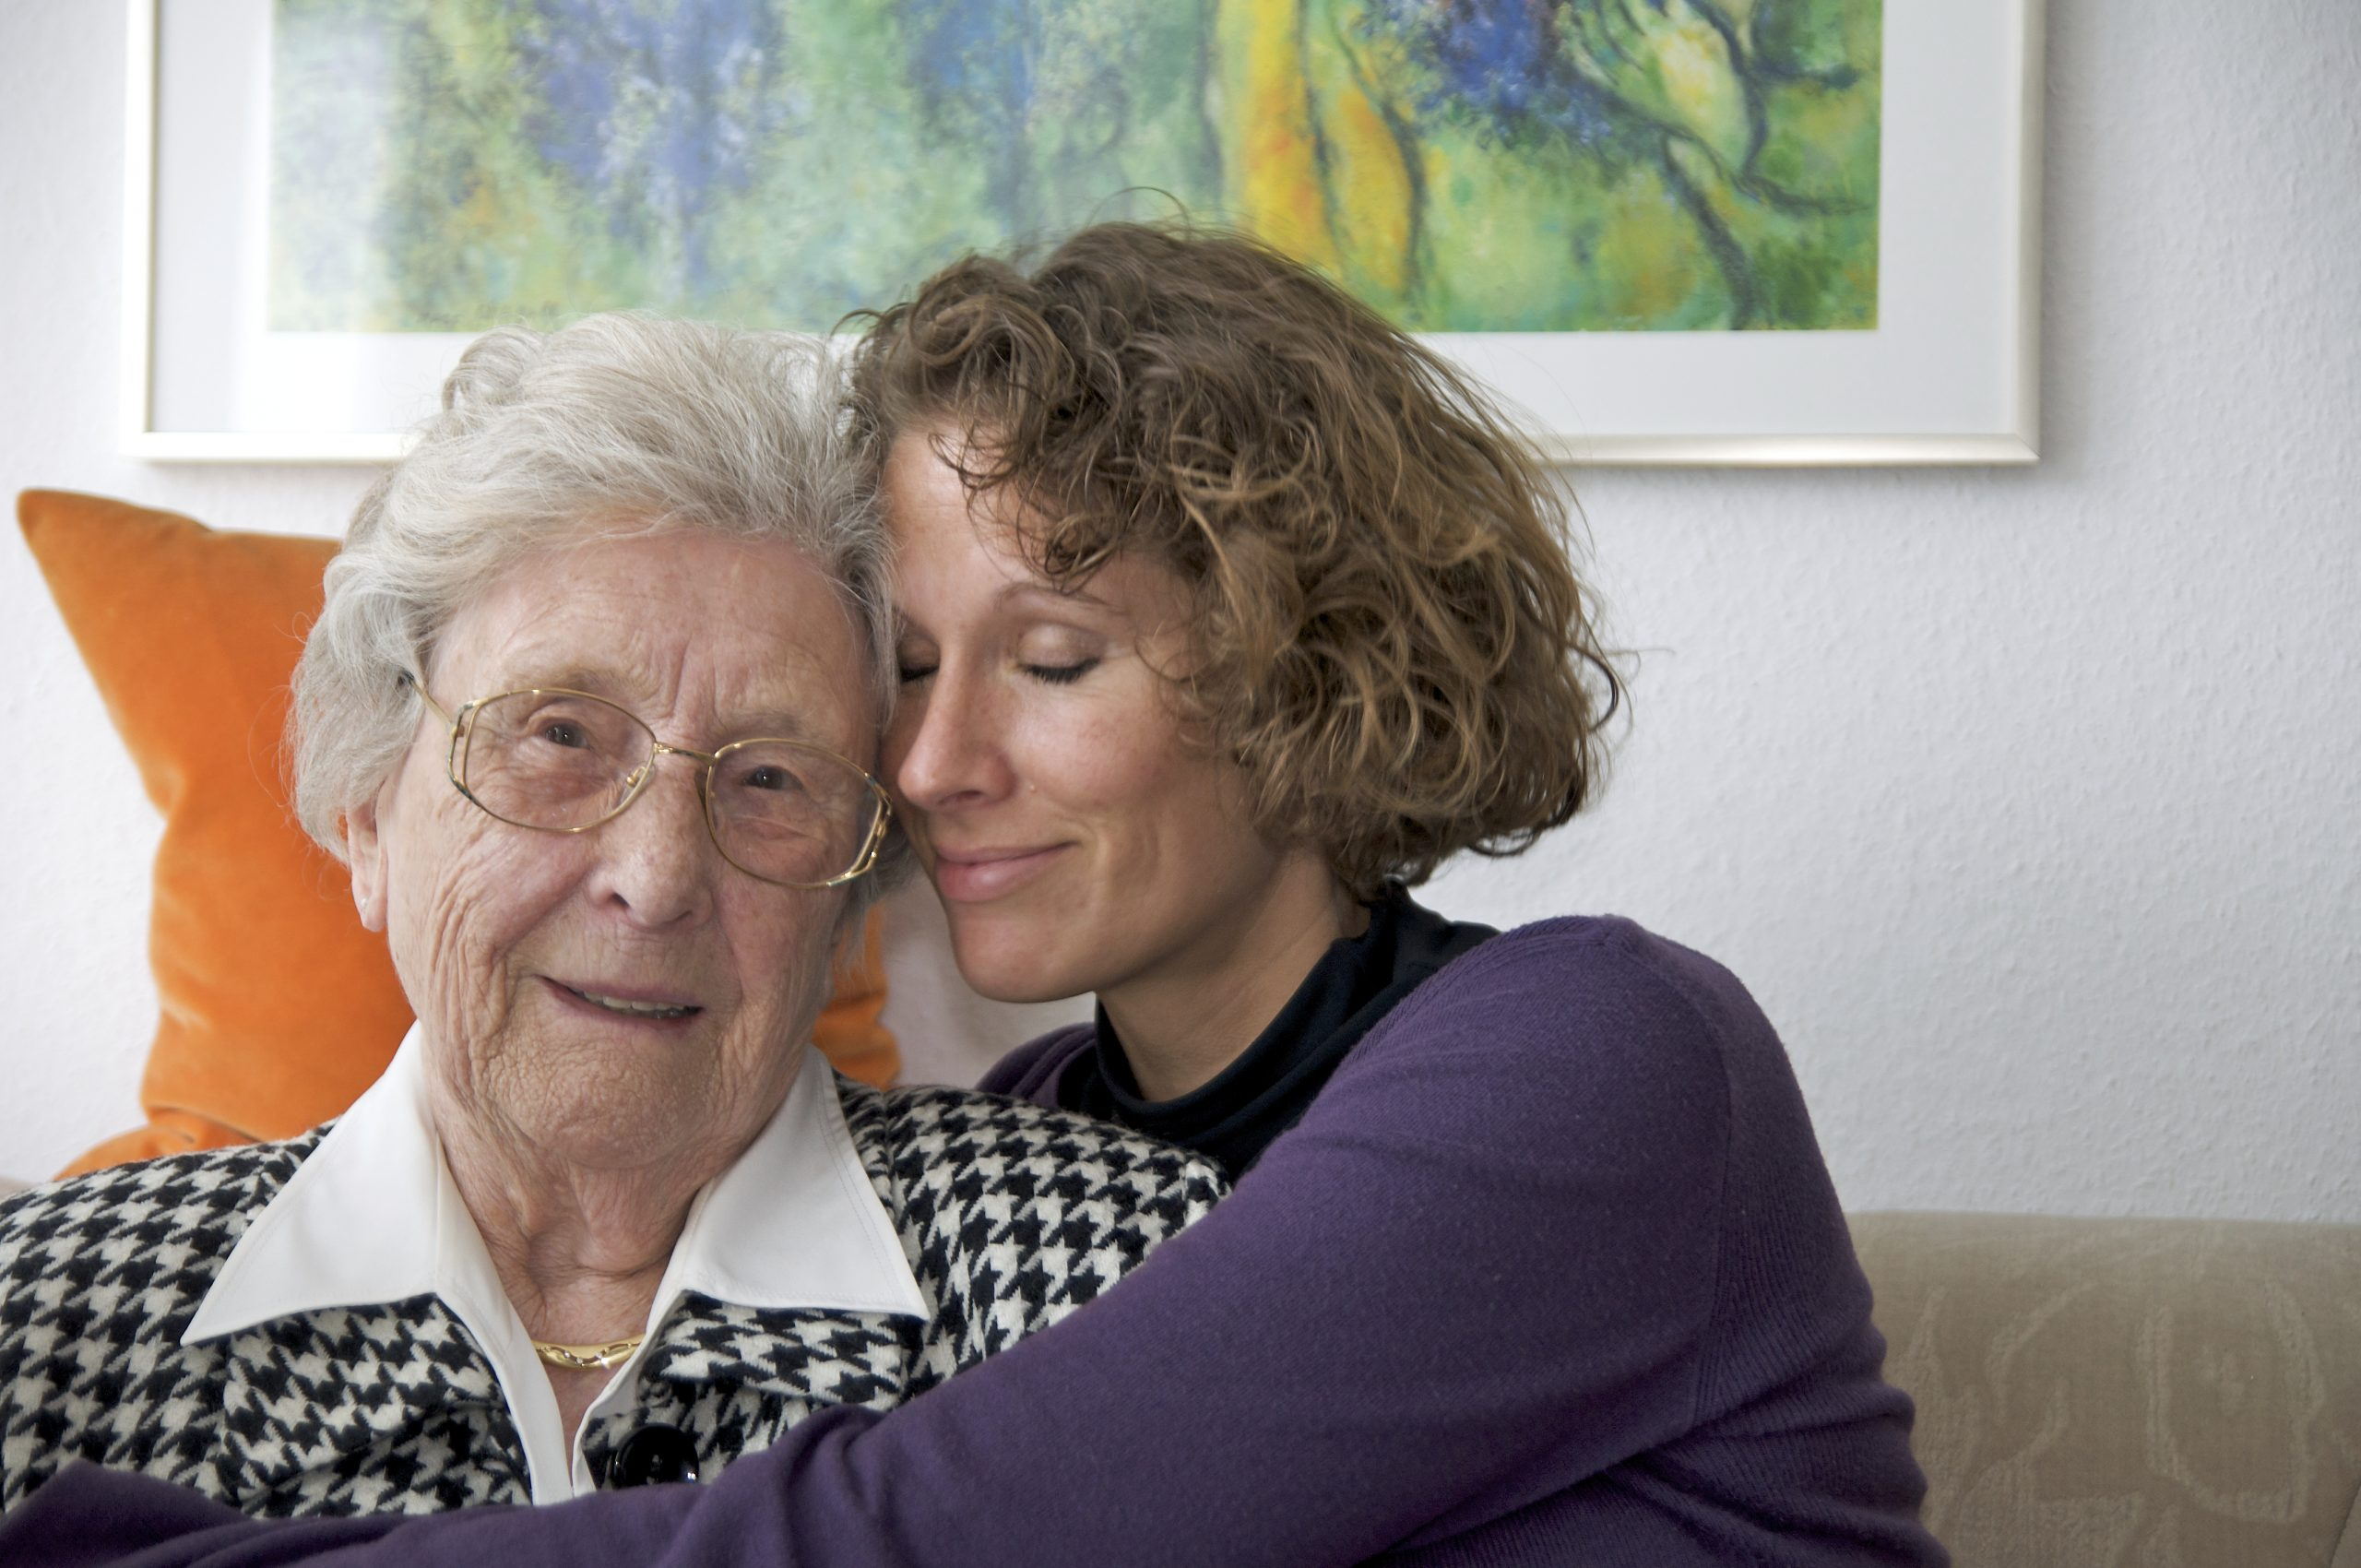 senior-care-plus-cargiver-h=h=embracing-aged-women-with-love-and-compassion